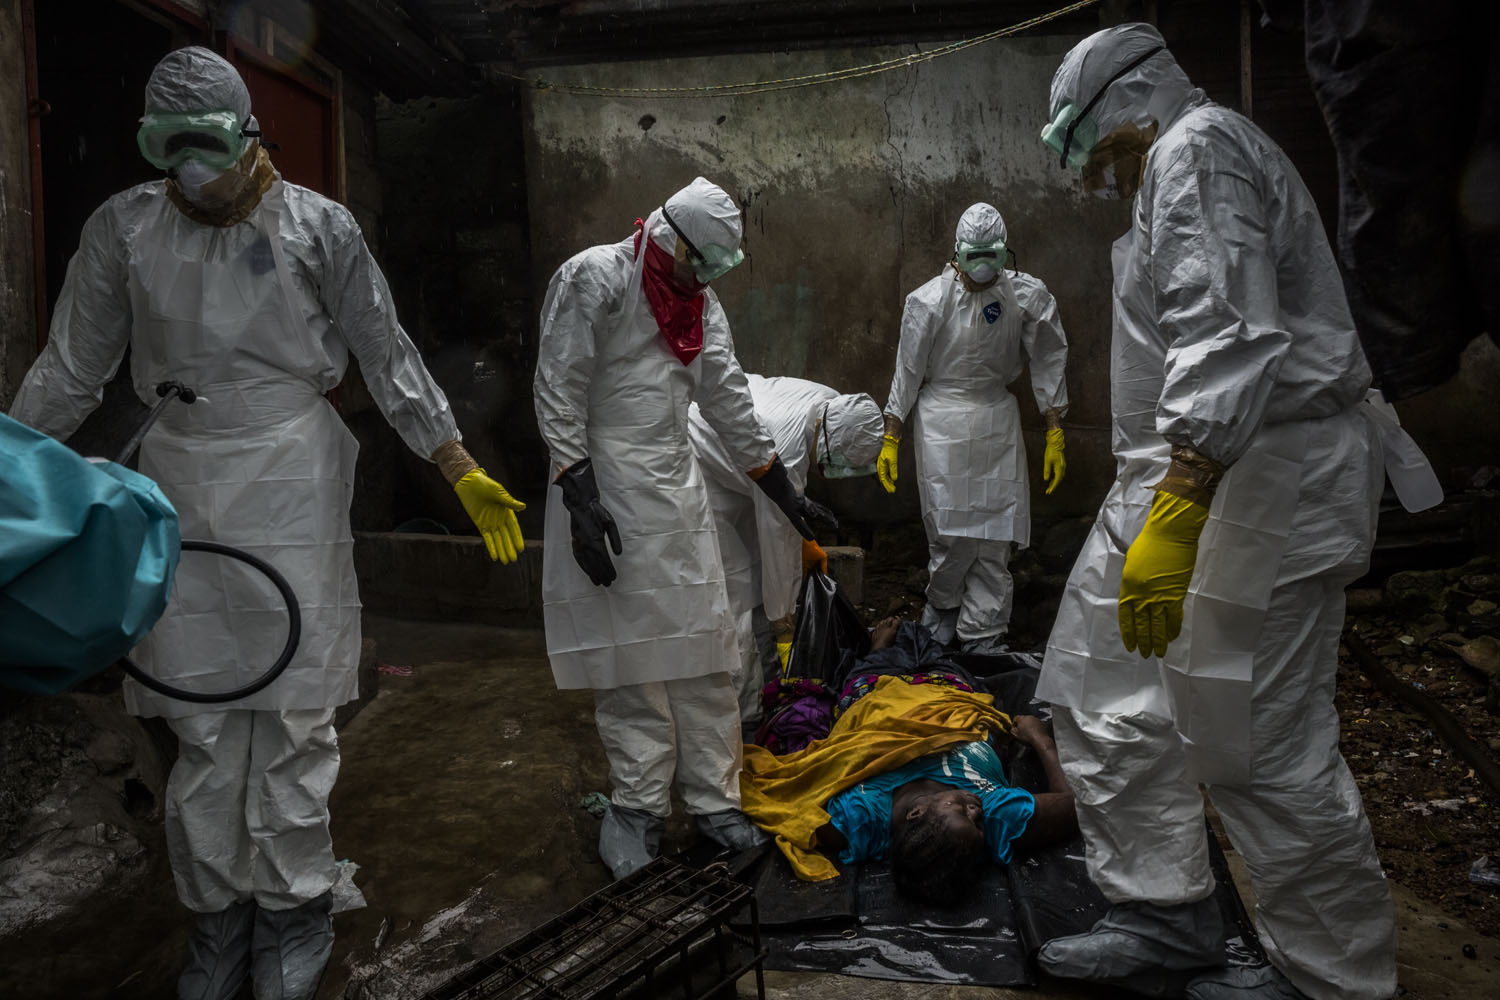 Members of a Liberian Red Cross burial team, under contract from the Liberian Ministry of Health, remove the body of suspected Ebola victim Lorpu David, 30, on Sept. 18, 2014, in the Gurley street community in central Monrovia, Liberia.